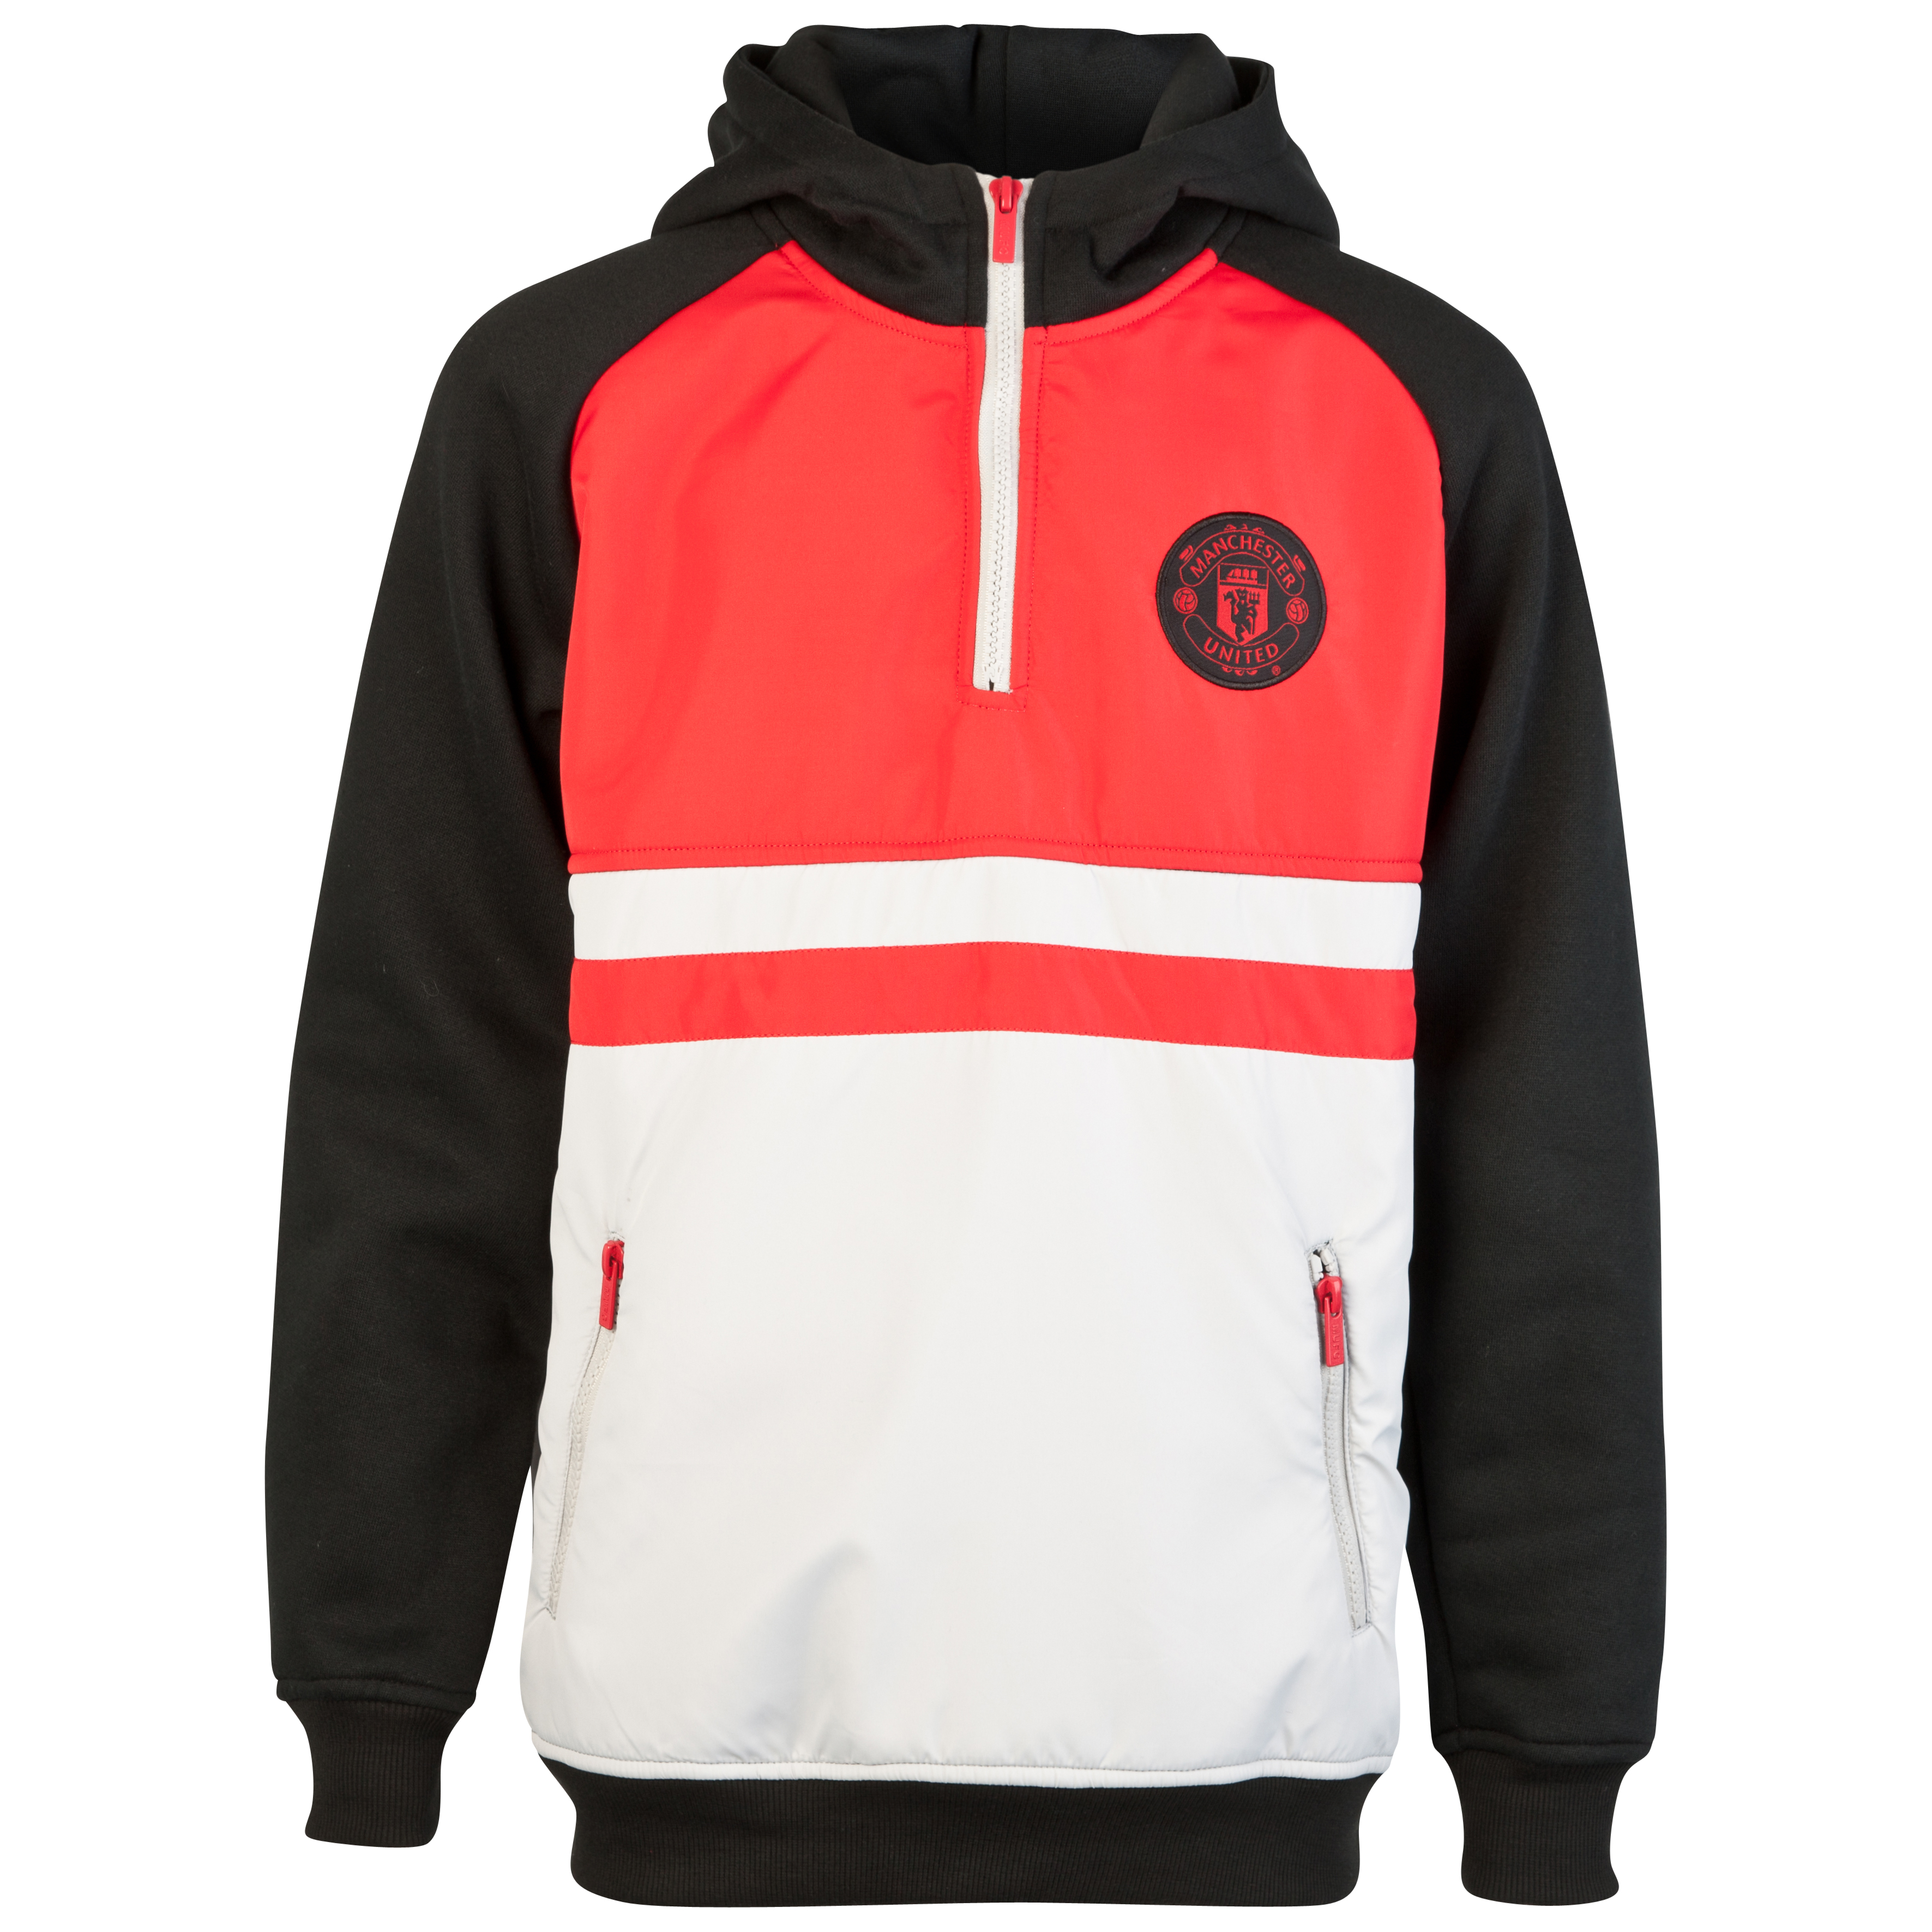 Manchester United Nylon Overlay 1/2 Zip Hoody - Black/Red/Grey Marl - Older Boys